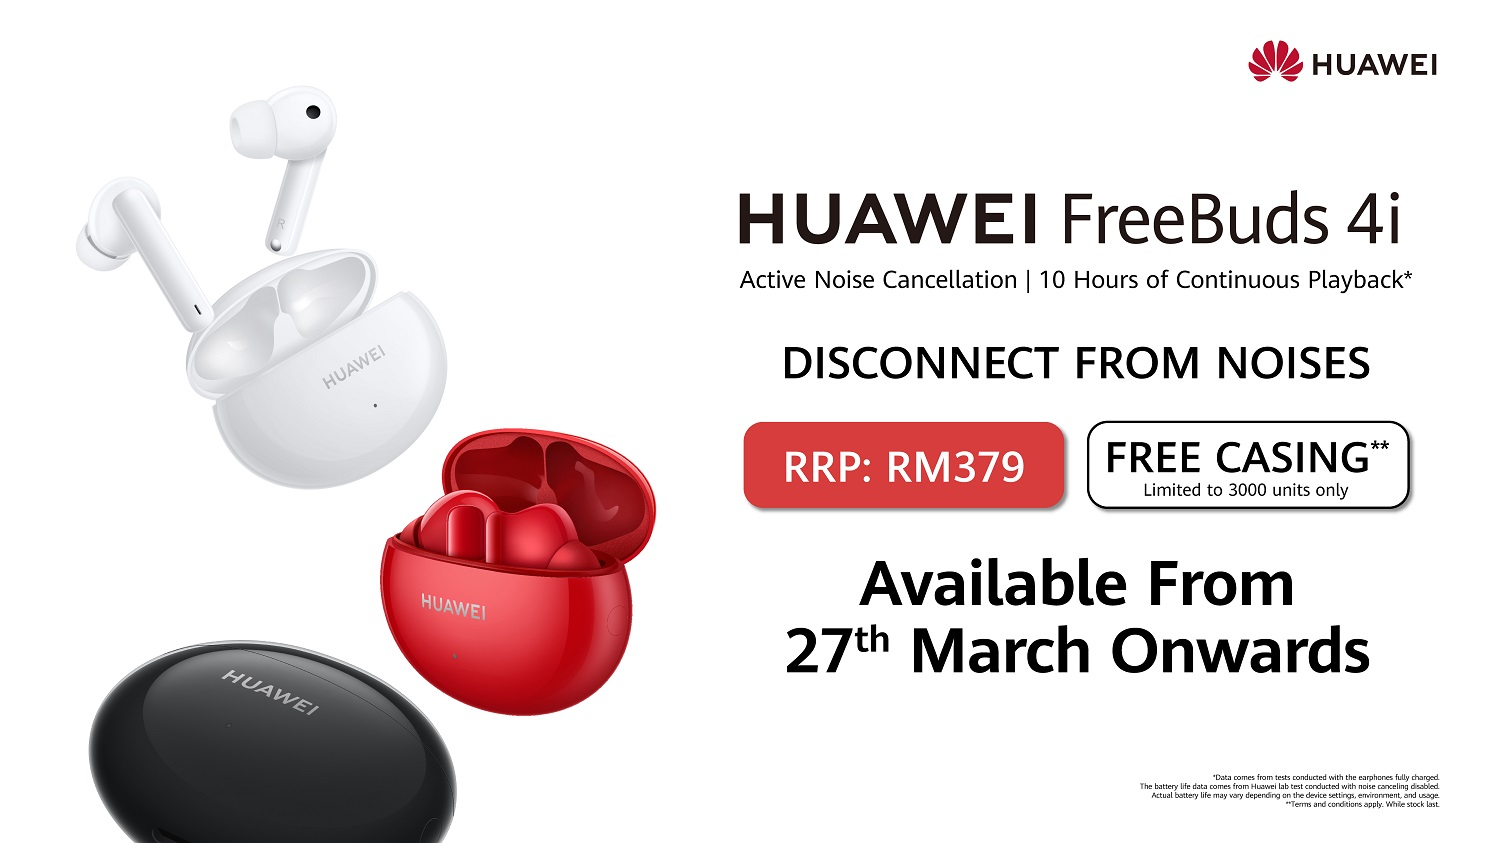 Meet Hael Husaini on 26 March at the HUAWEI FreeBuds 4i Sales Launch